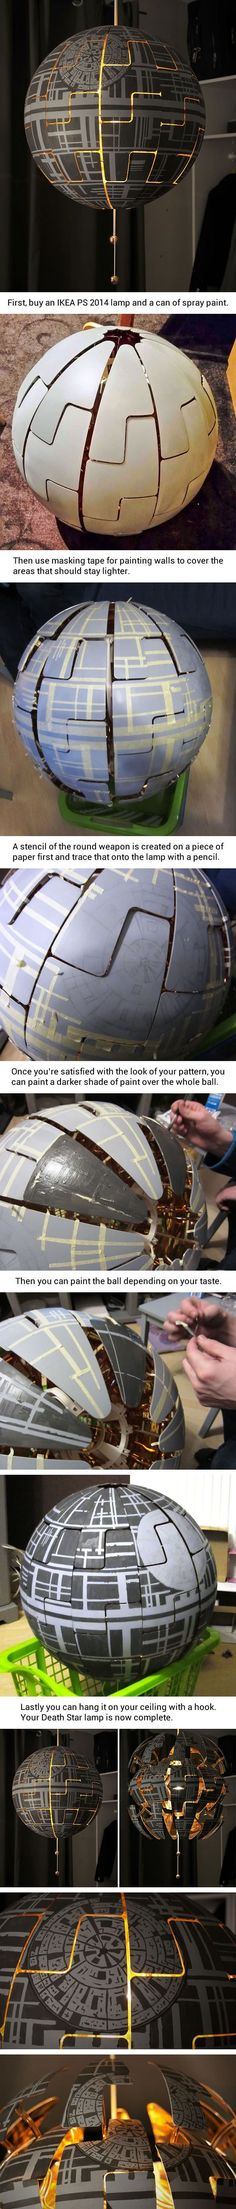 How to make your own Death Star lamp (by Lylelo)